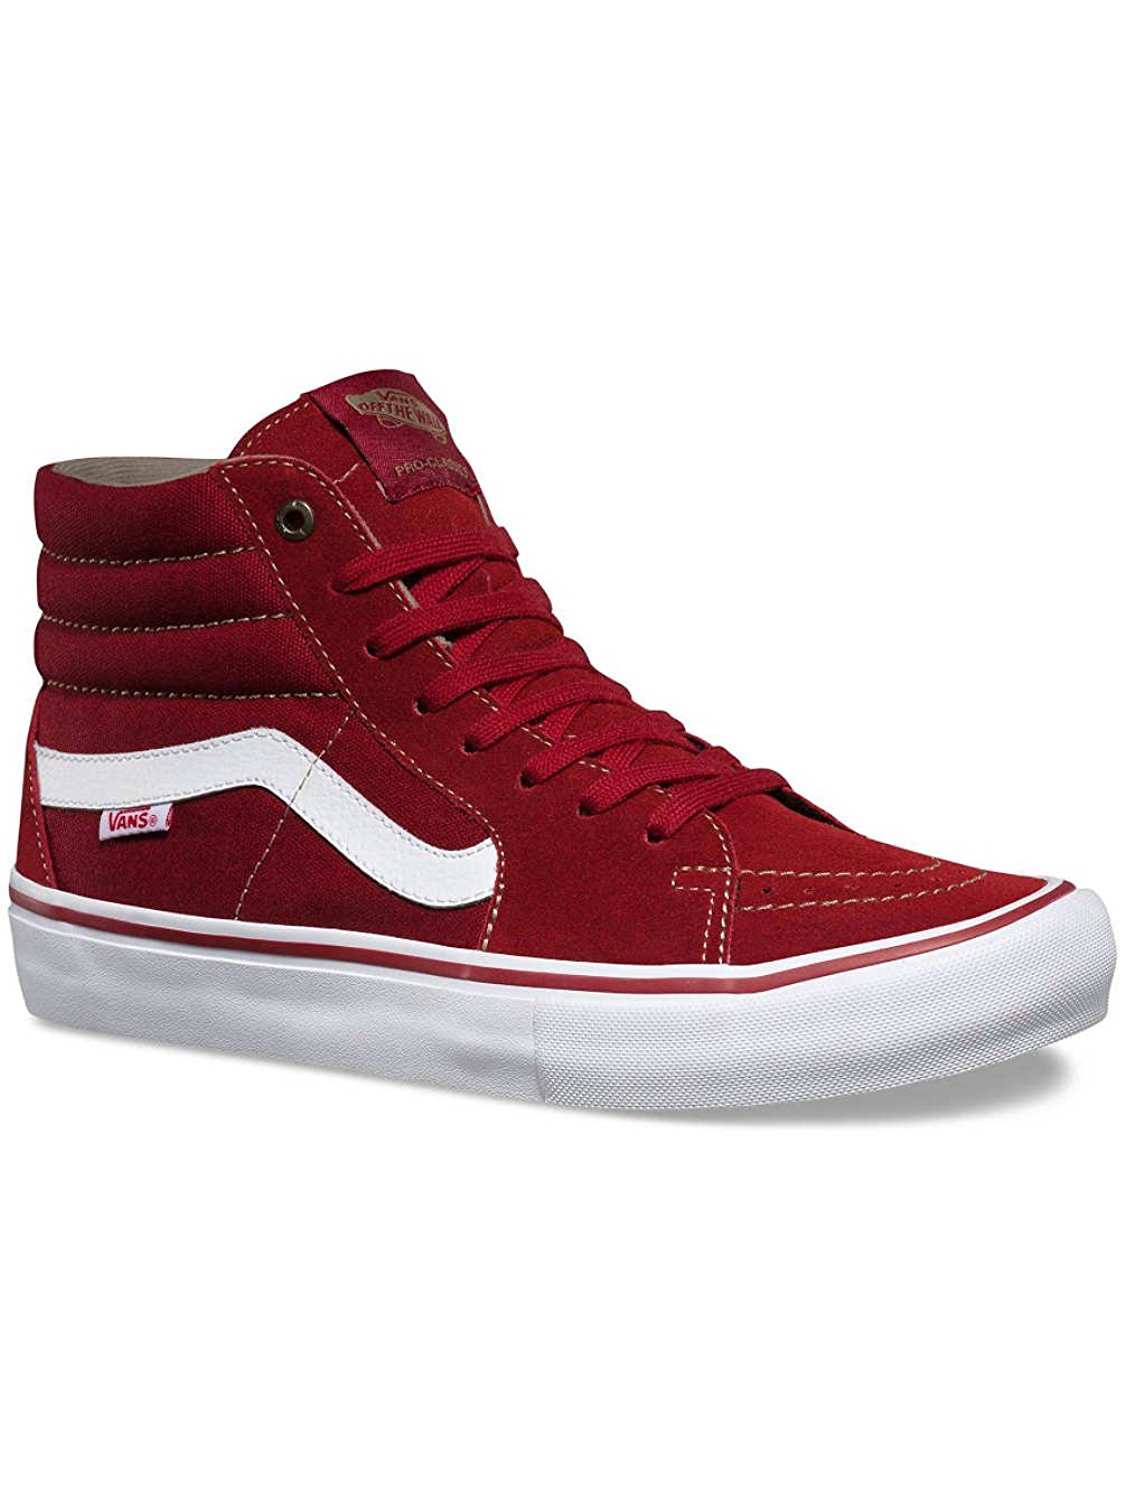 922841227e Get Quotations · Vans Sk8-Hi Pro (Red Dahlia White) Men s Skate Shoes